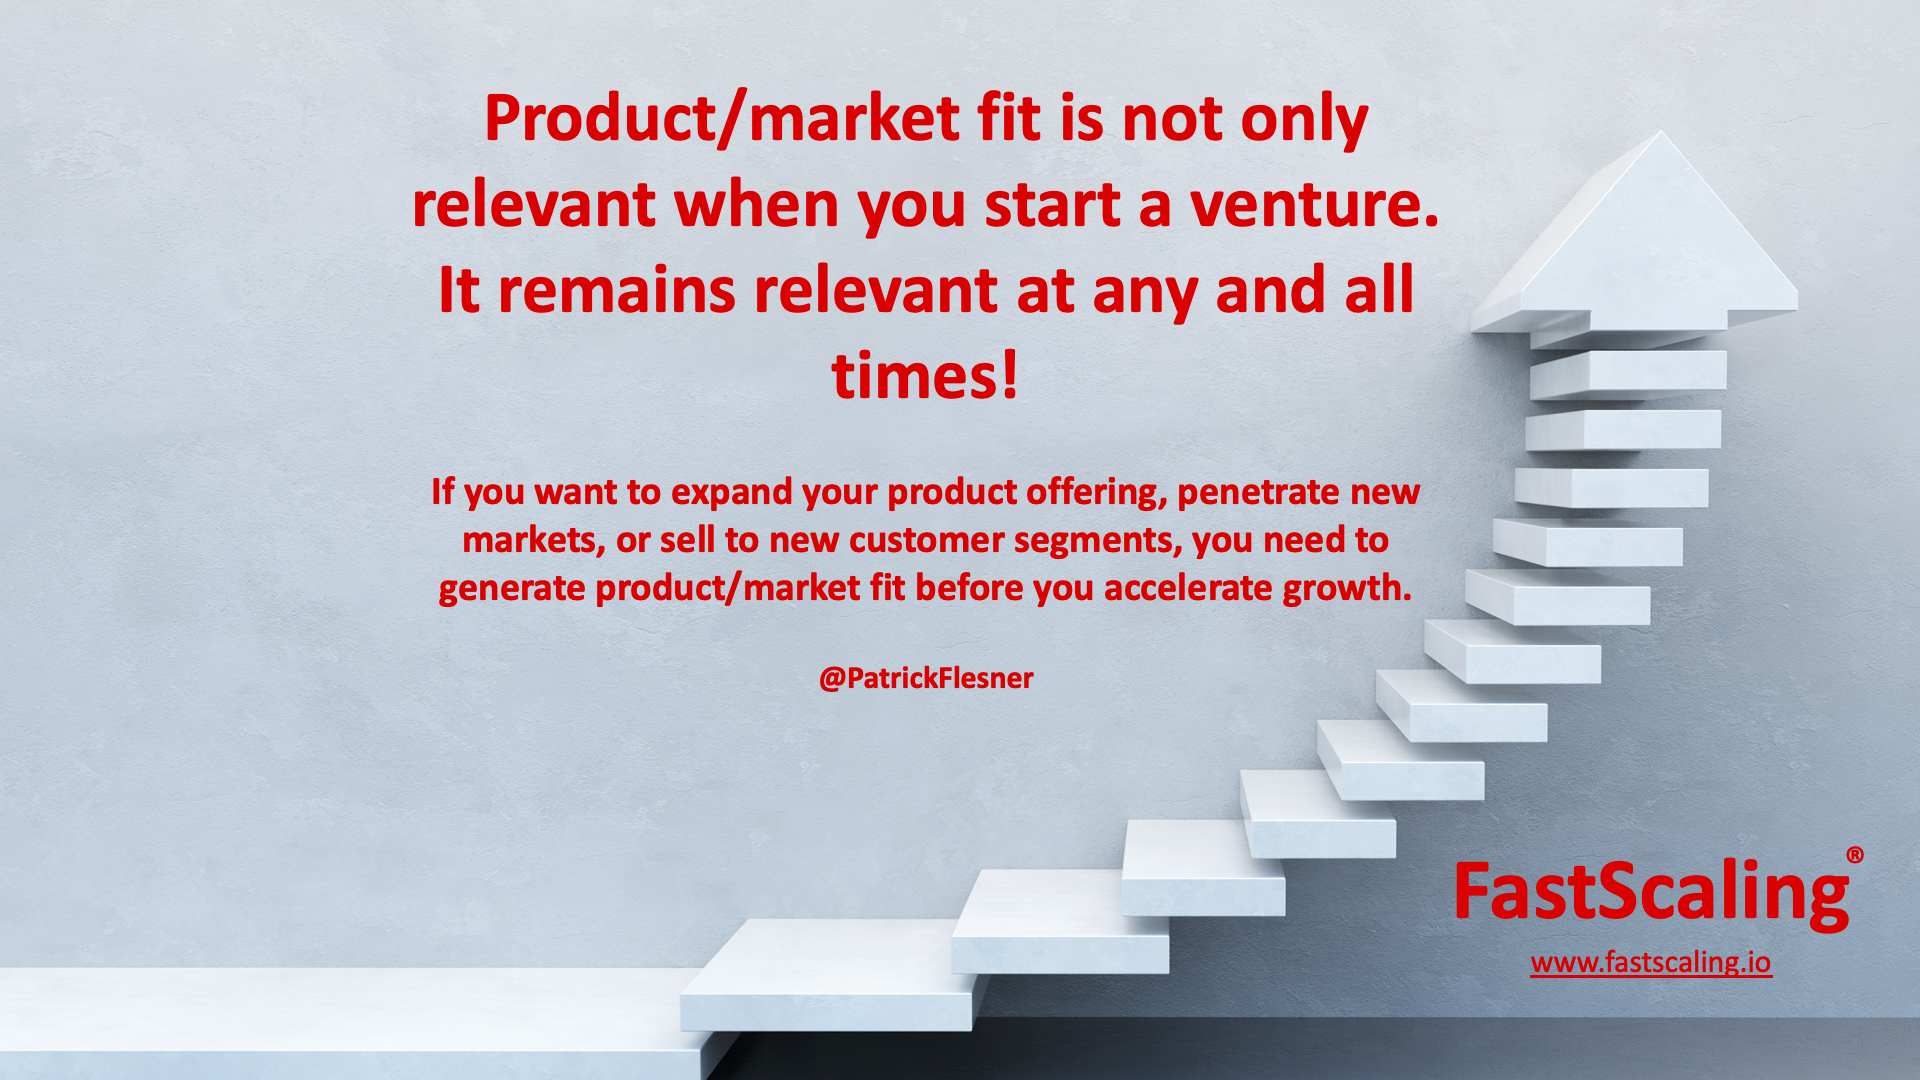 Product/Market Fit - Relevant at any and all Times